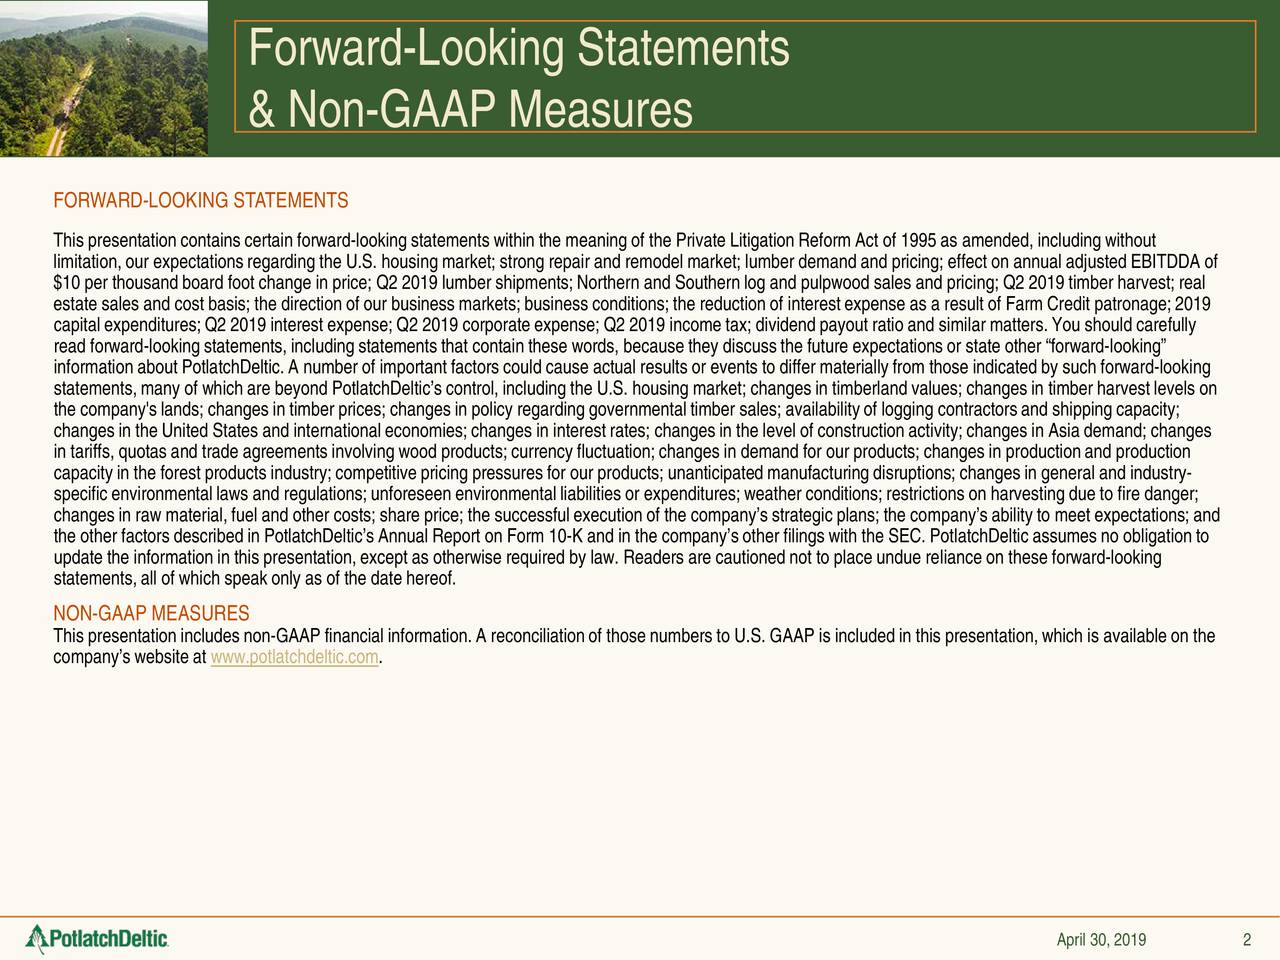 """& Non-GAAP Measures FORWARD-LOOKING STATEMENTS This presentation contains certain forward-looking statements within the meaning of the Private Litigation Reform Act of 1995 asamended, including without limitation, our expectations regarding the U.S. housing market; strong repair and remodel market; lumber demand and pricing;effect on annual adjusted EBITDDA of $10 per thousand board foot change in price; Q2 2019 lumber shipments;Northern and Southern log and pulpwood sales and pricing;Q2 2019 timber harvest; real estate sales and cost basis; the direction of our business markets; business conditions; the reduction of interest expense asa result of Farm Credit patronage; 2019 capital expenditures; Q2 2019 interest expense; Q2 2019 corporate expense; Q2 2019 income tax; dividend payout rair matters. You should carefully read forward-looking statements, including statements that contain these words, because they discuss the future expectations orstate other """"forward-looking"""" information about PotlatchDeltic. A number of important factors could cause actual results or events to differ materially from those indicated by such forward-looking statements, many of which are beyondPotlatchDeltic's control, including the U.S. housing market; changes in timberland values; changes in timber harvest levels on the company's lands; changes in timber prices; changes in policy regarding governmental timber sales; availability of loggingcontractors and shipping capacity; changes in the United States and internationaleconomies;changes in interest rates; changes in the level of constructionactivity; changes in Asia demand; changes in tariffs, quotas and trade agreements involving wood products; currency fluctuation; changes in demand for anges in production and production capacity in the forest products industry; competitive pricing pressures for our products; unanticipated manufacturing disrupitons; changes in general and industry- specific environmental laws and regulations; unforesee"""